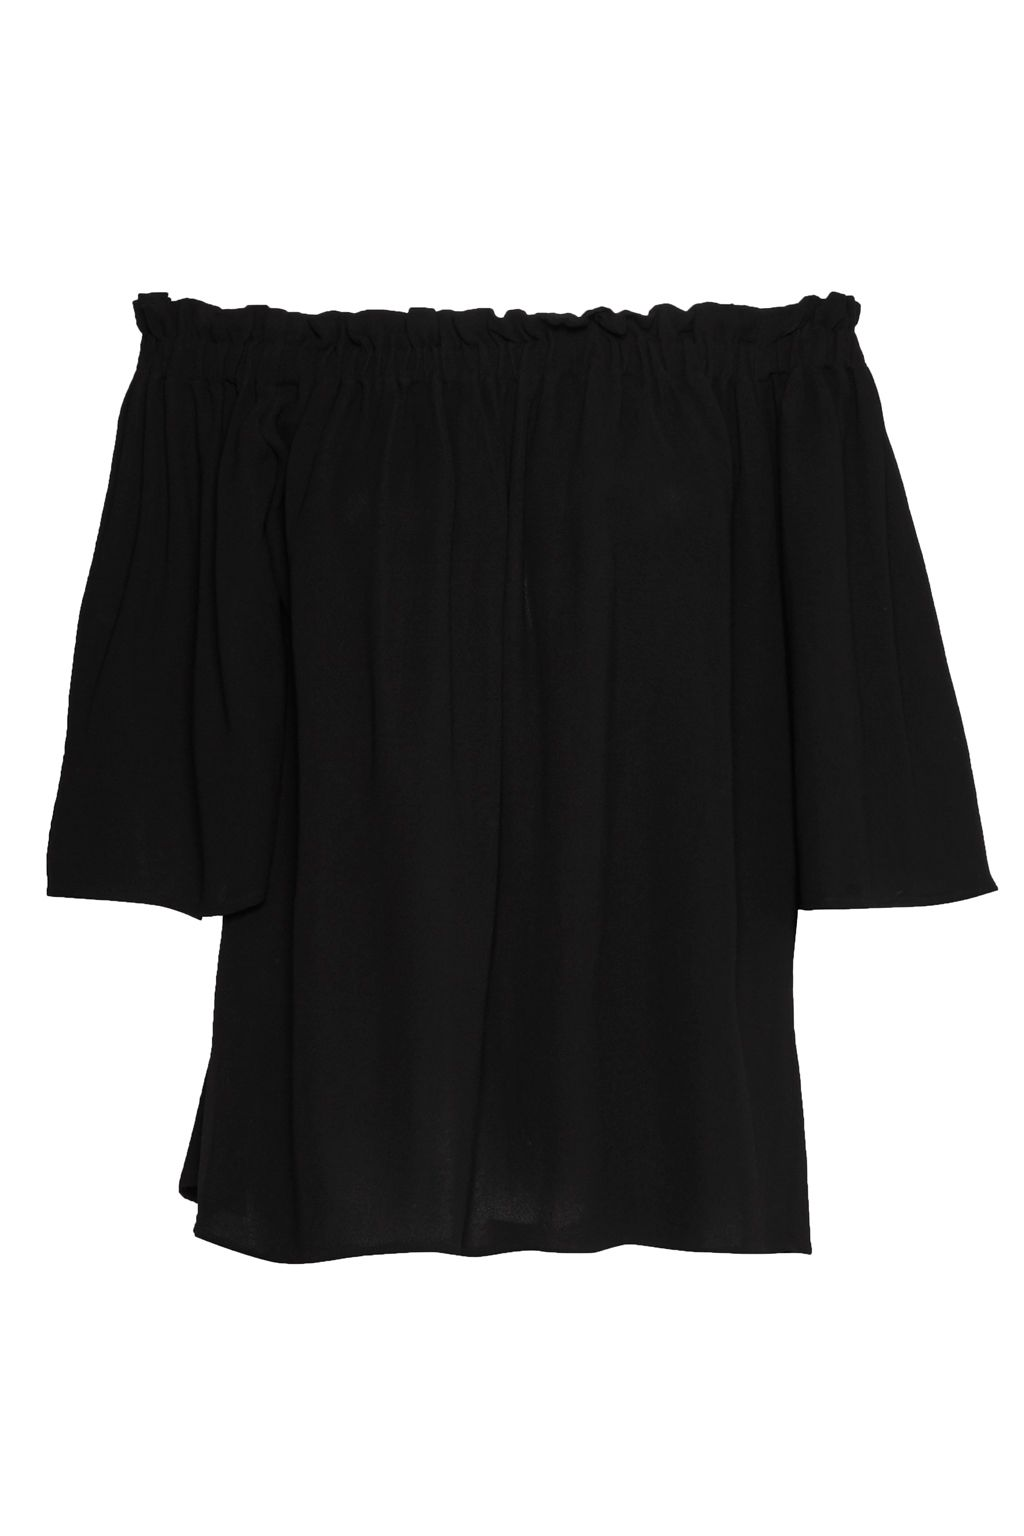 French Connection Evening Dew Ruffle Bardot Top, Black